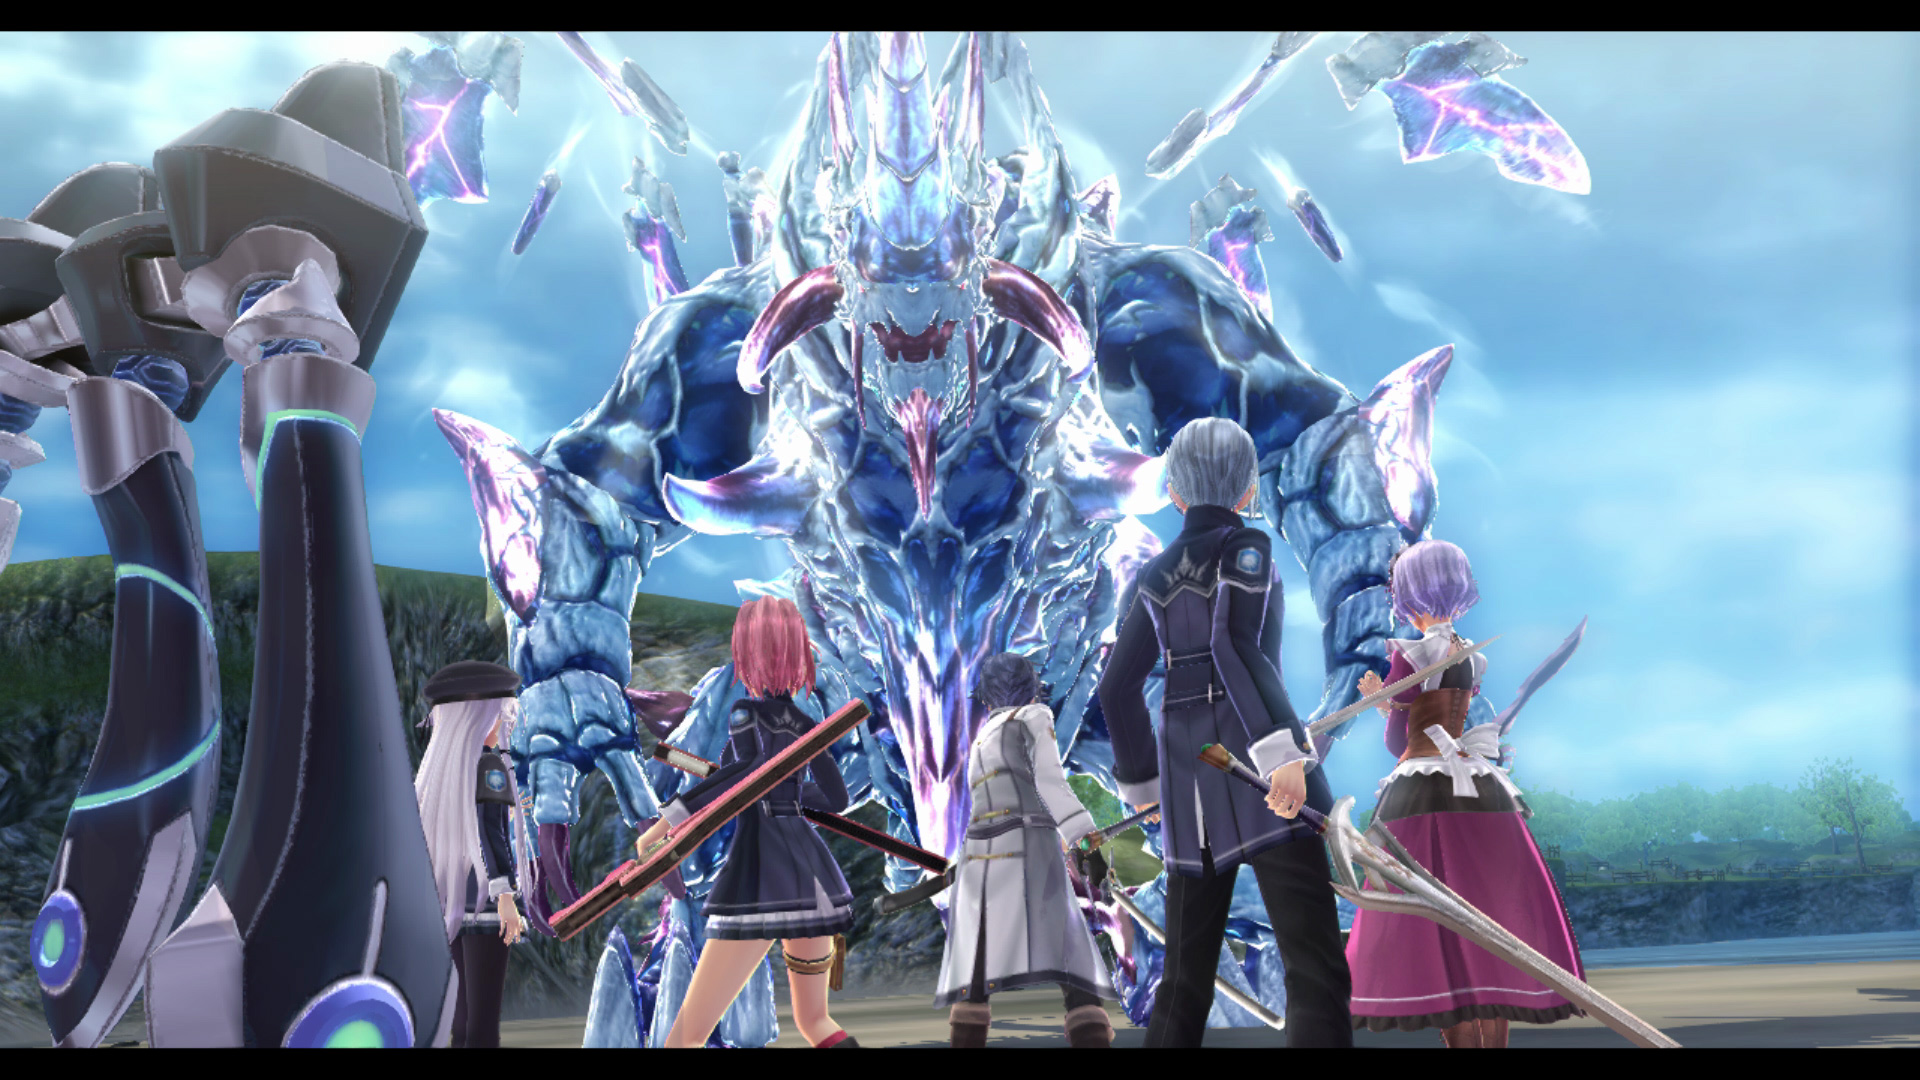 The Legend of Heroes: Trails of Cold Steel III screenshot featuring the group facing a crystalline foe.